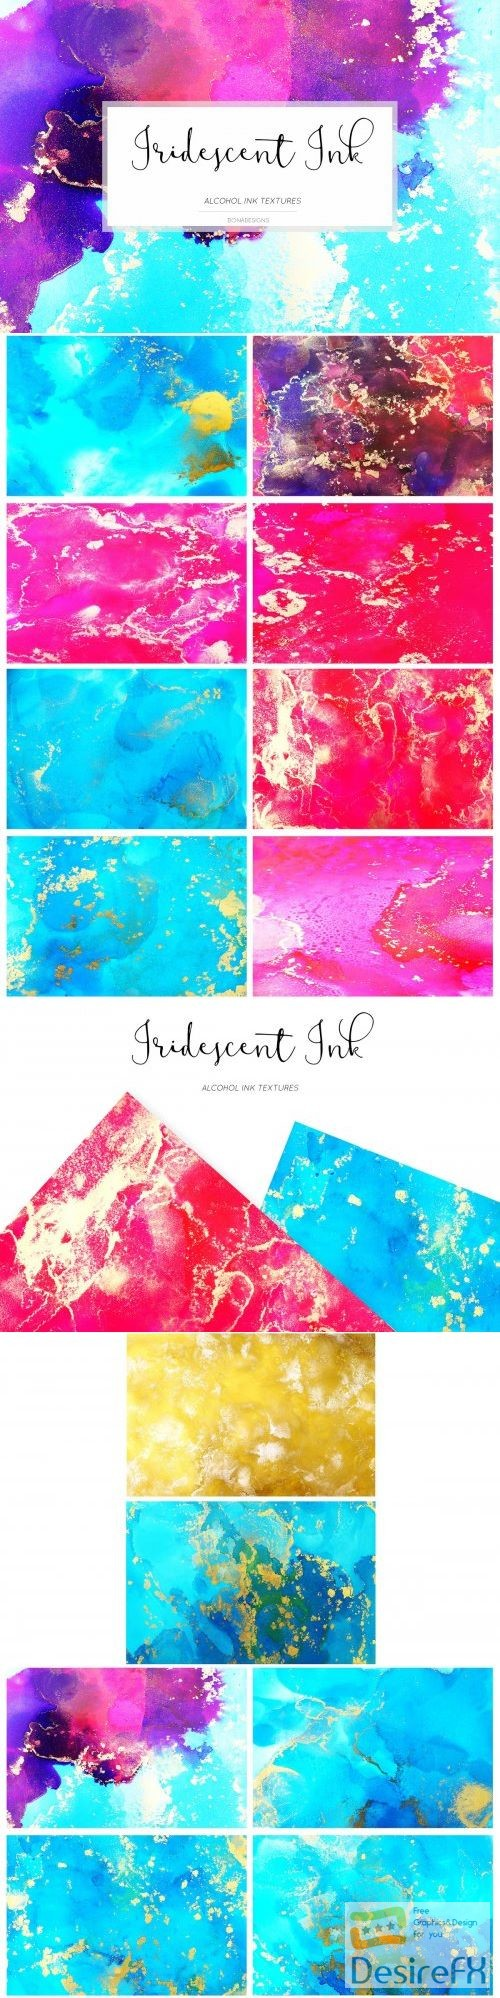 stock-images - Iridescent Ink Textures 3986765